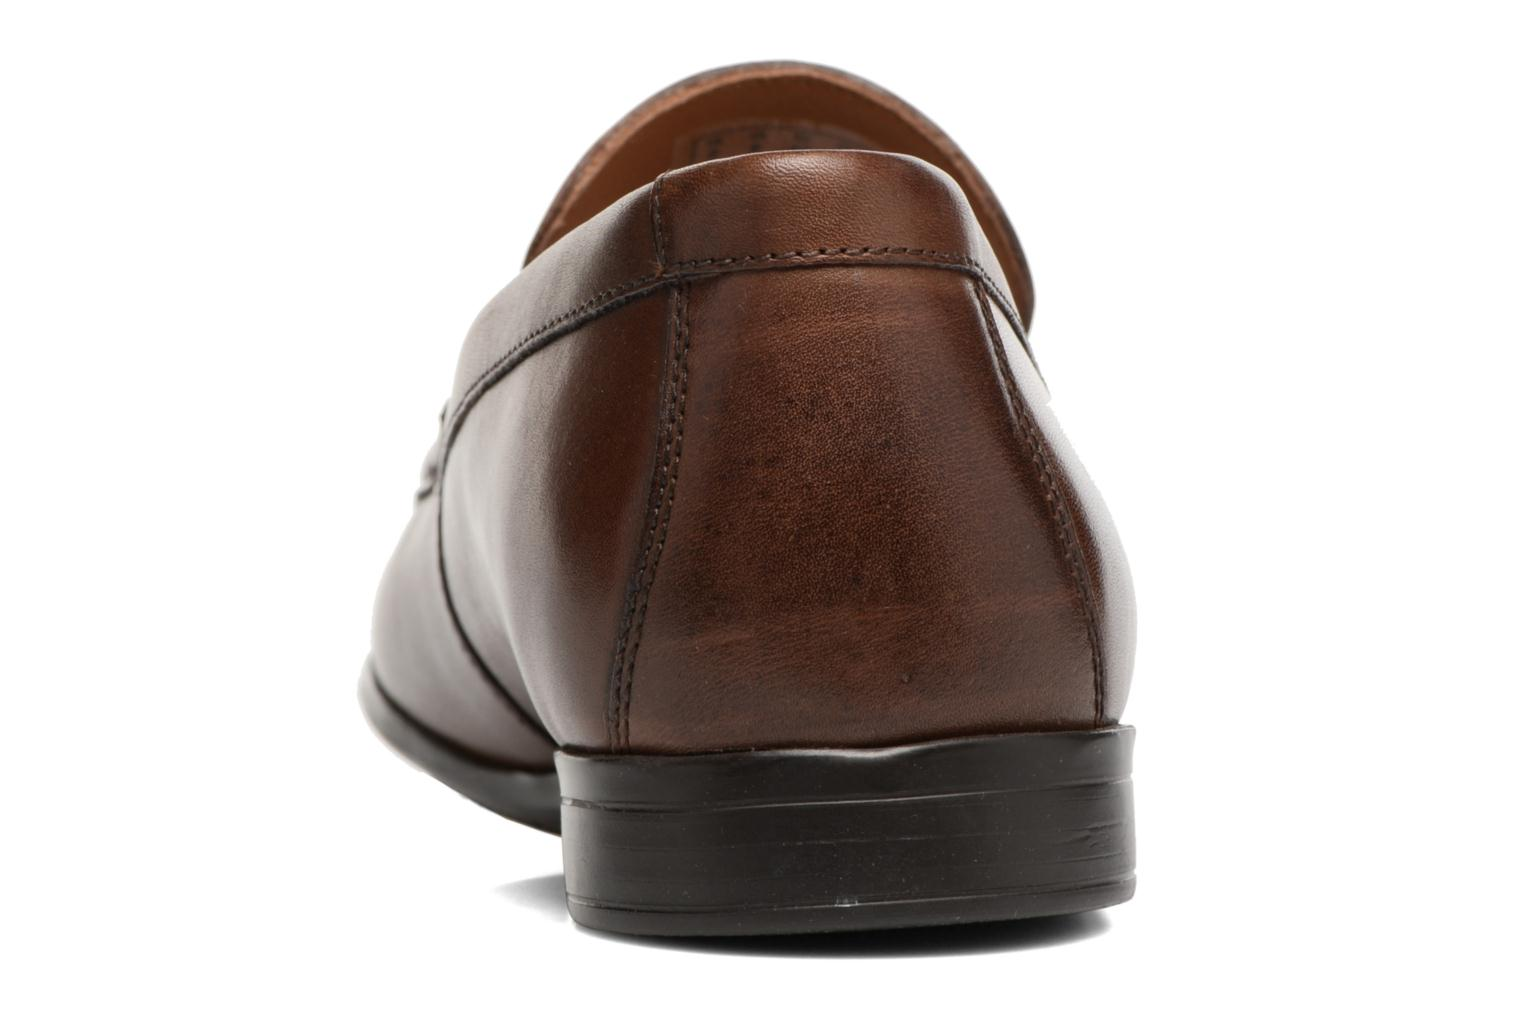 Claude Plain Brown leather